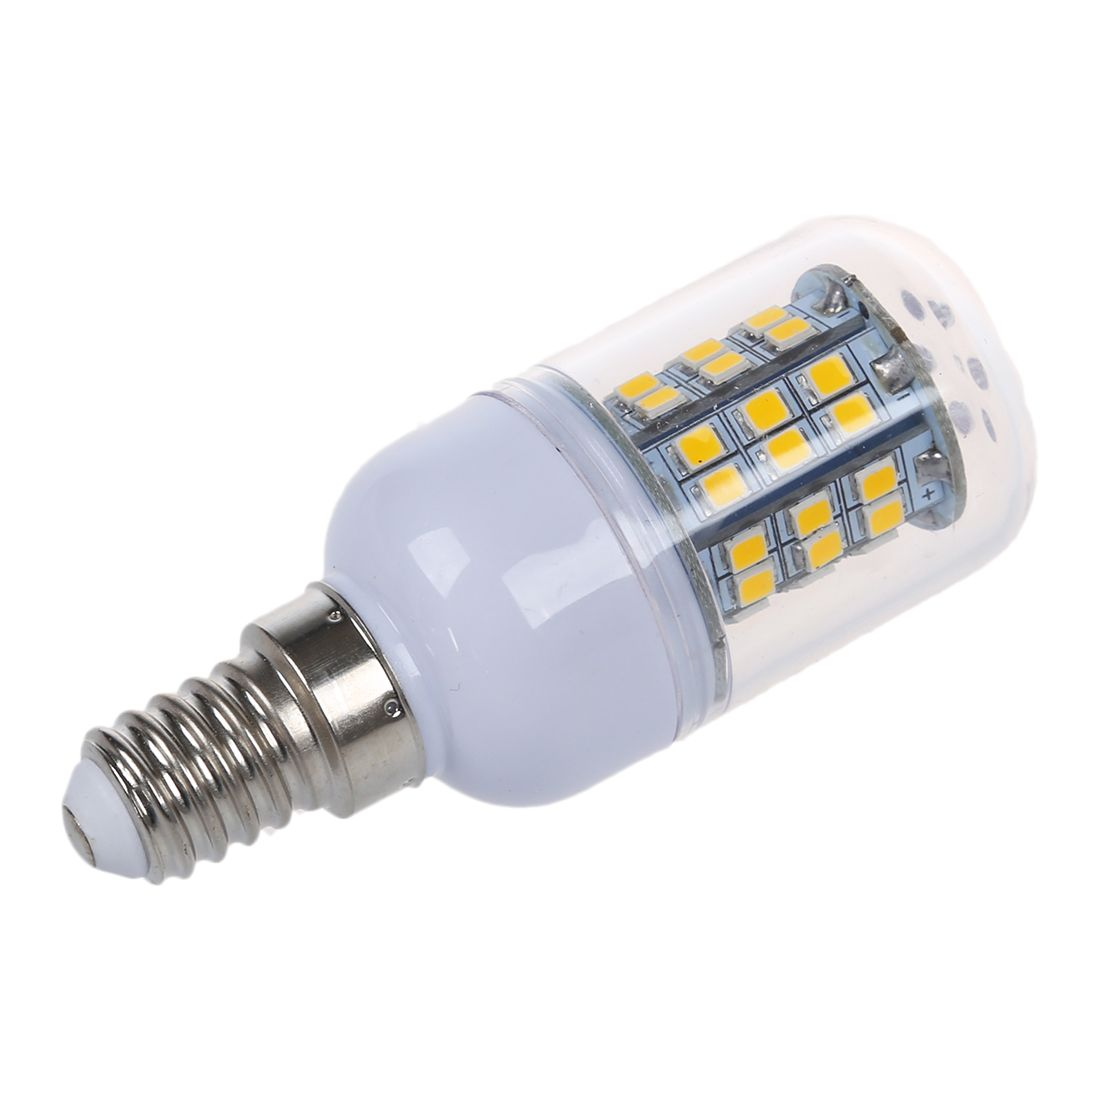 Spot Lamp E14 48 Smd Warm White Led 3 Watt 2800k Led Lights Led White Lead